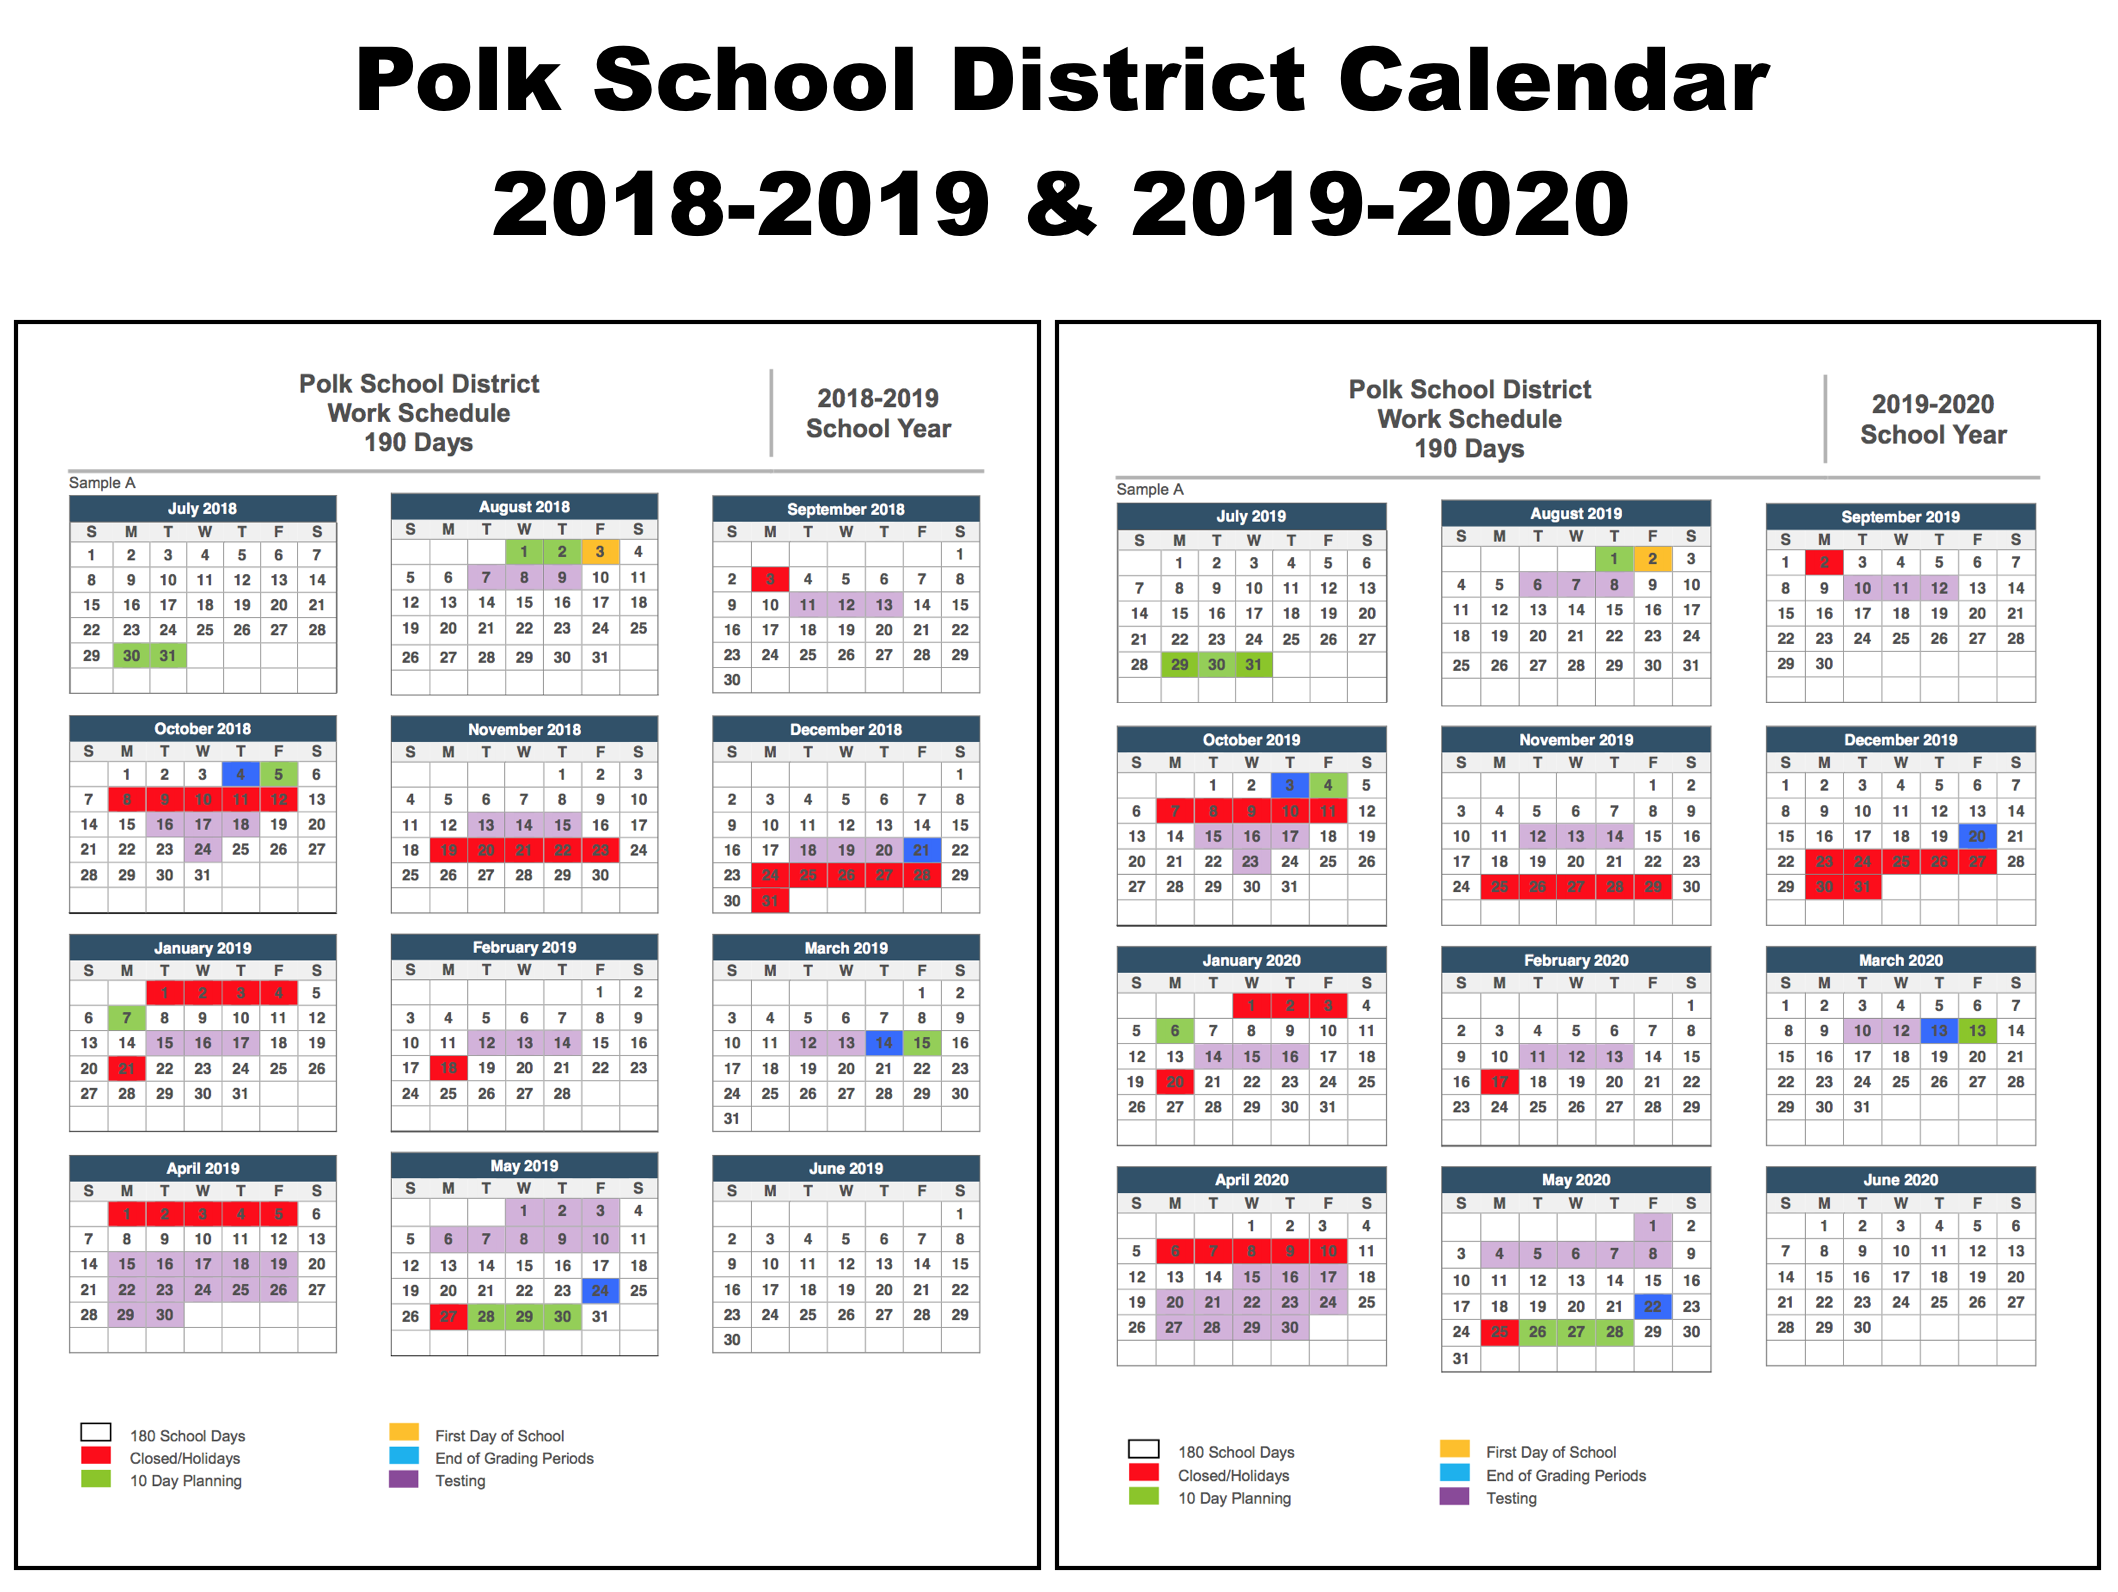 Polk County School Calendar 2020 17 | Calendar Fall 2020 For University Of Albany Ga School Calendar